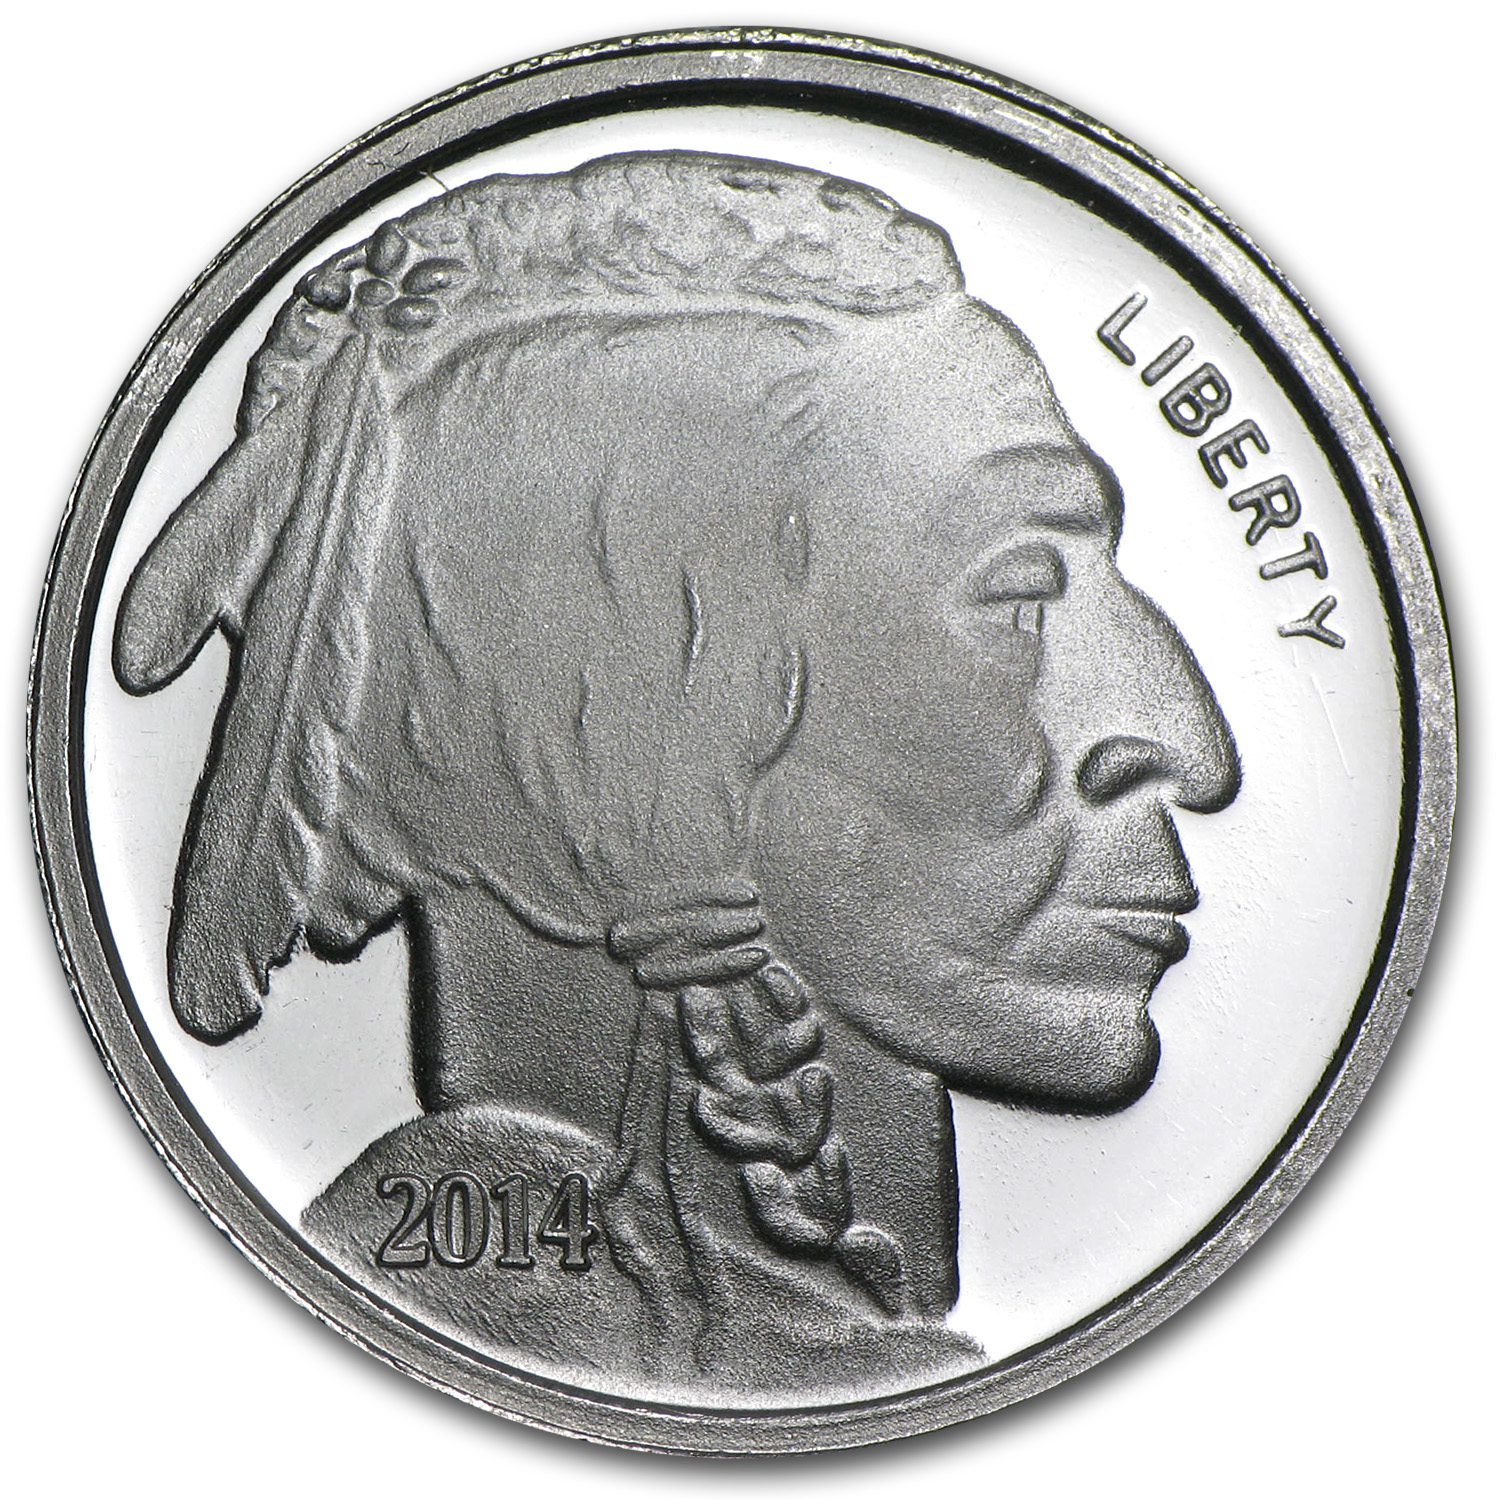 1/2 oz Silver Rounds - 2014 Buffalo